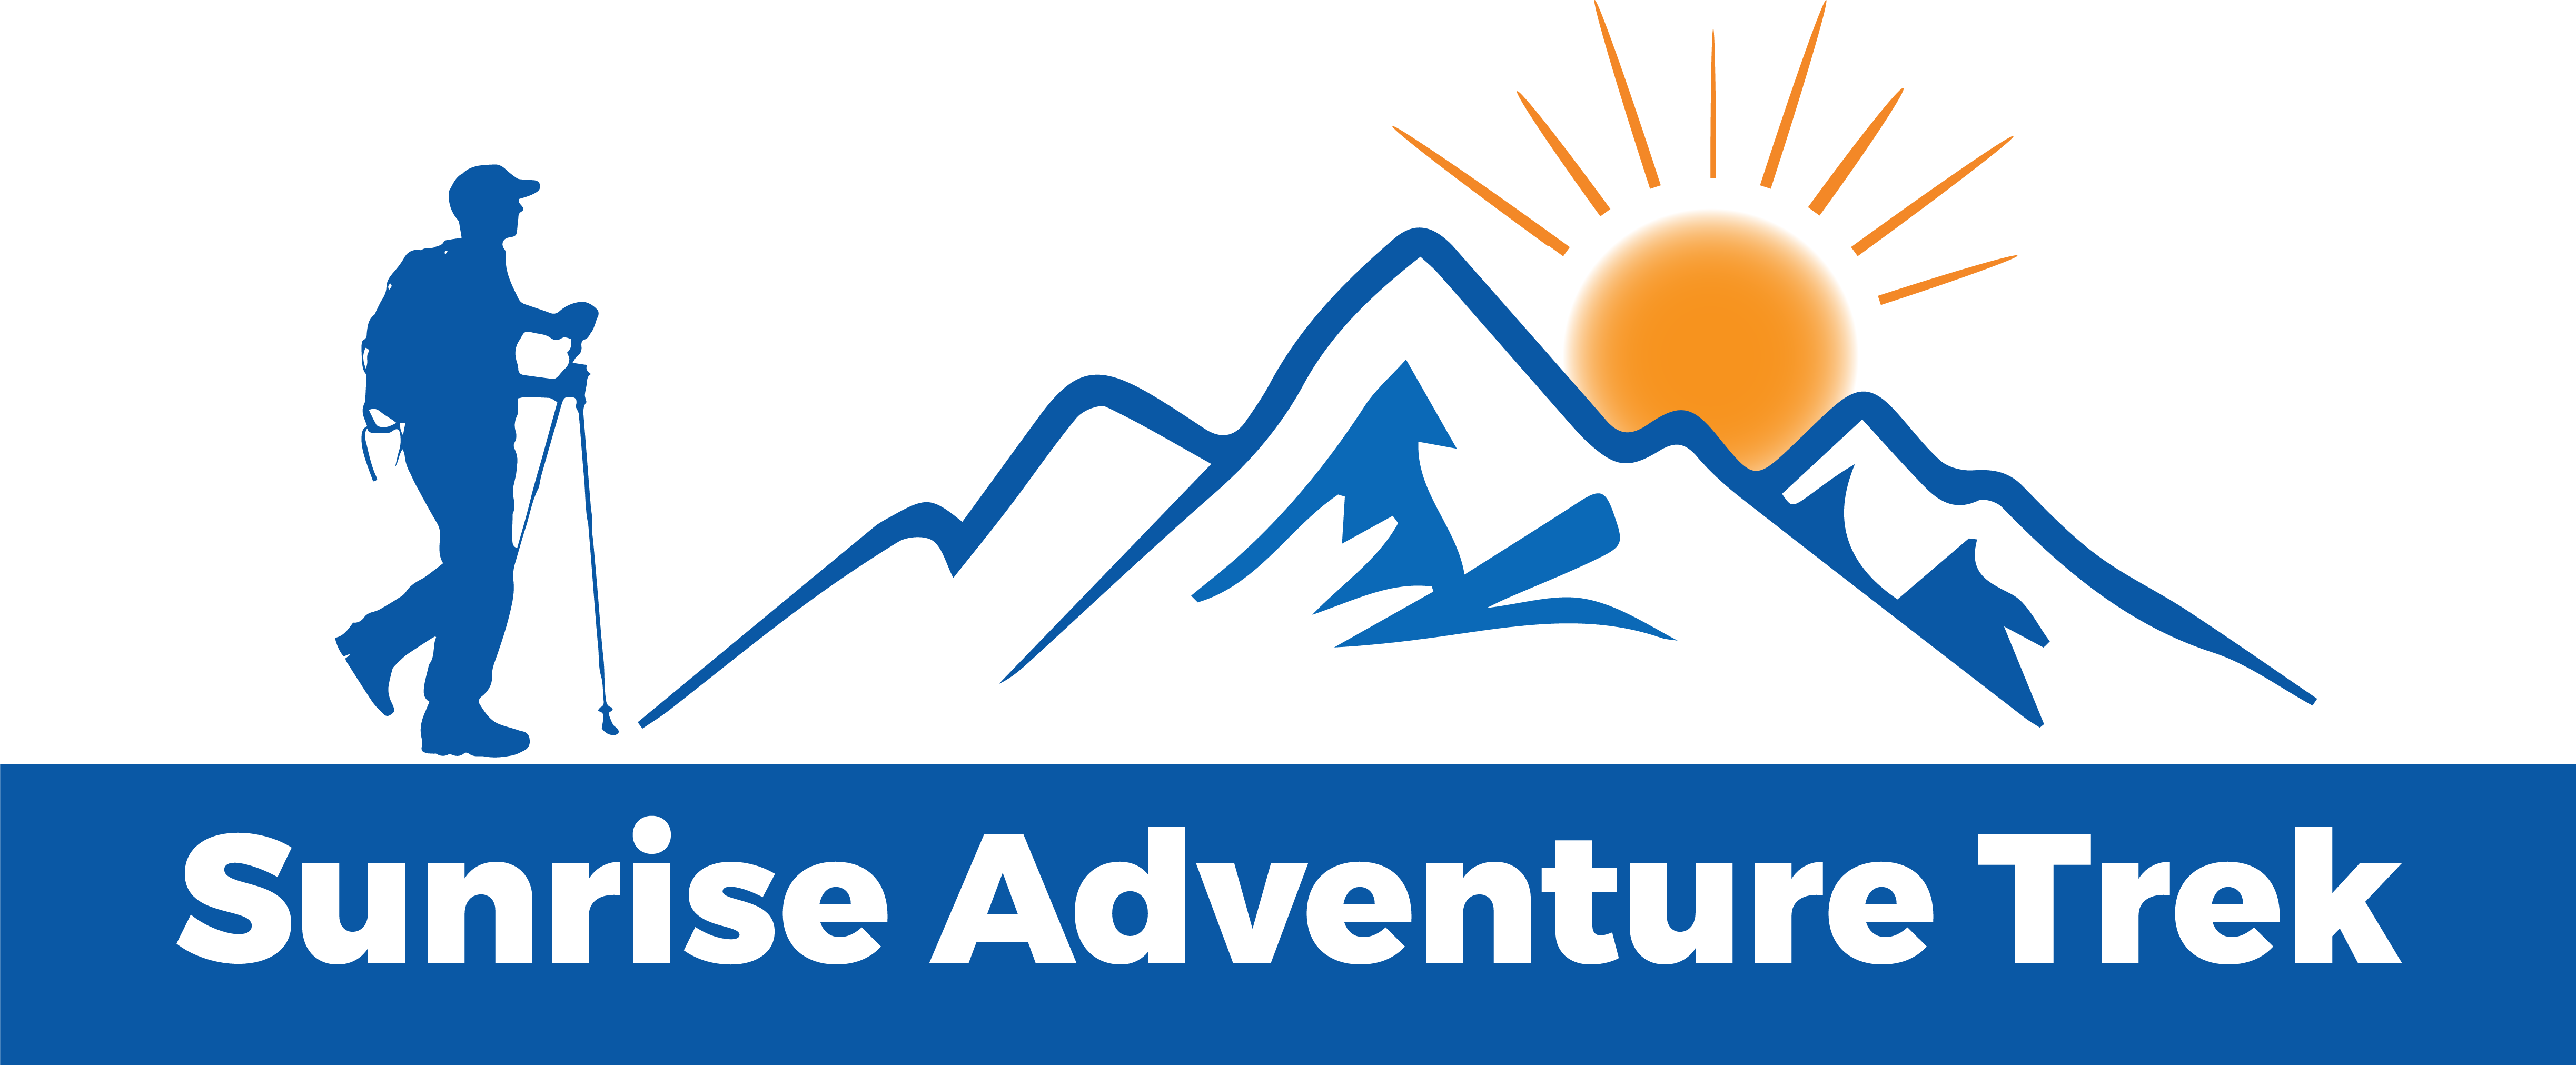 Sunrise Adventure Trek & Expedition